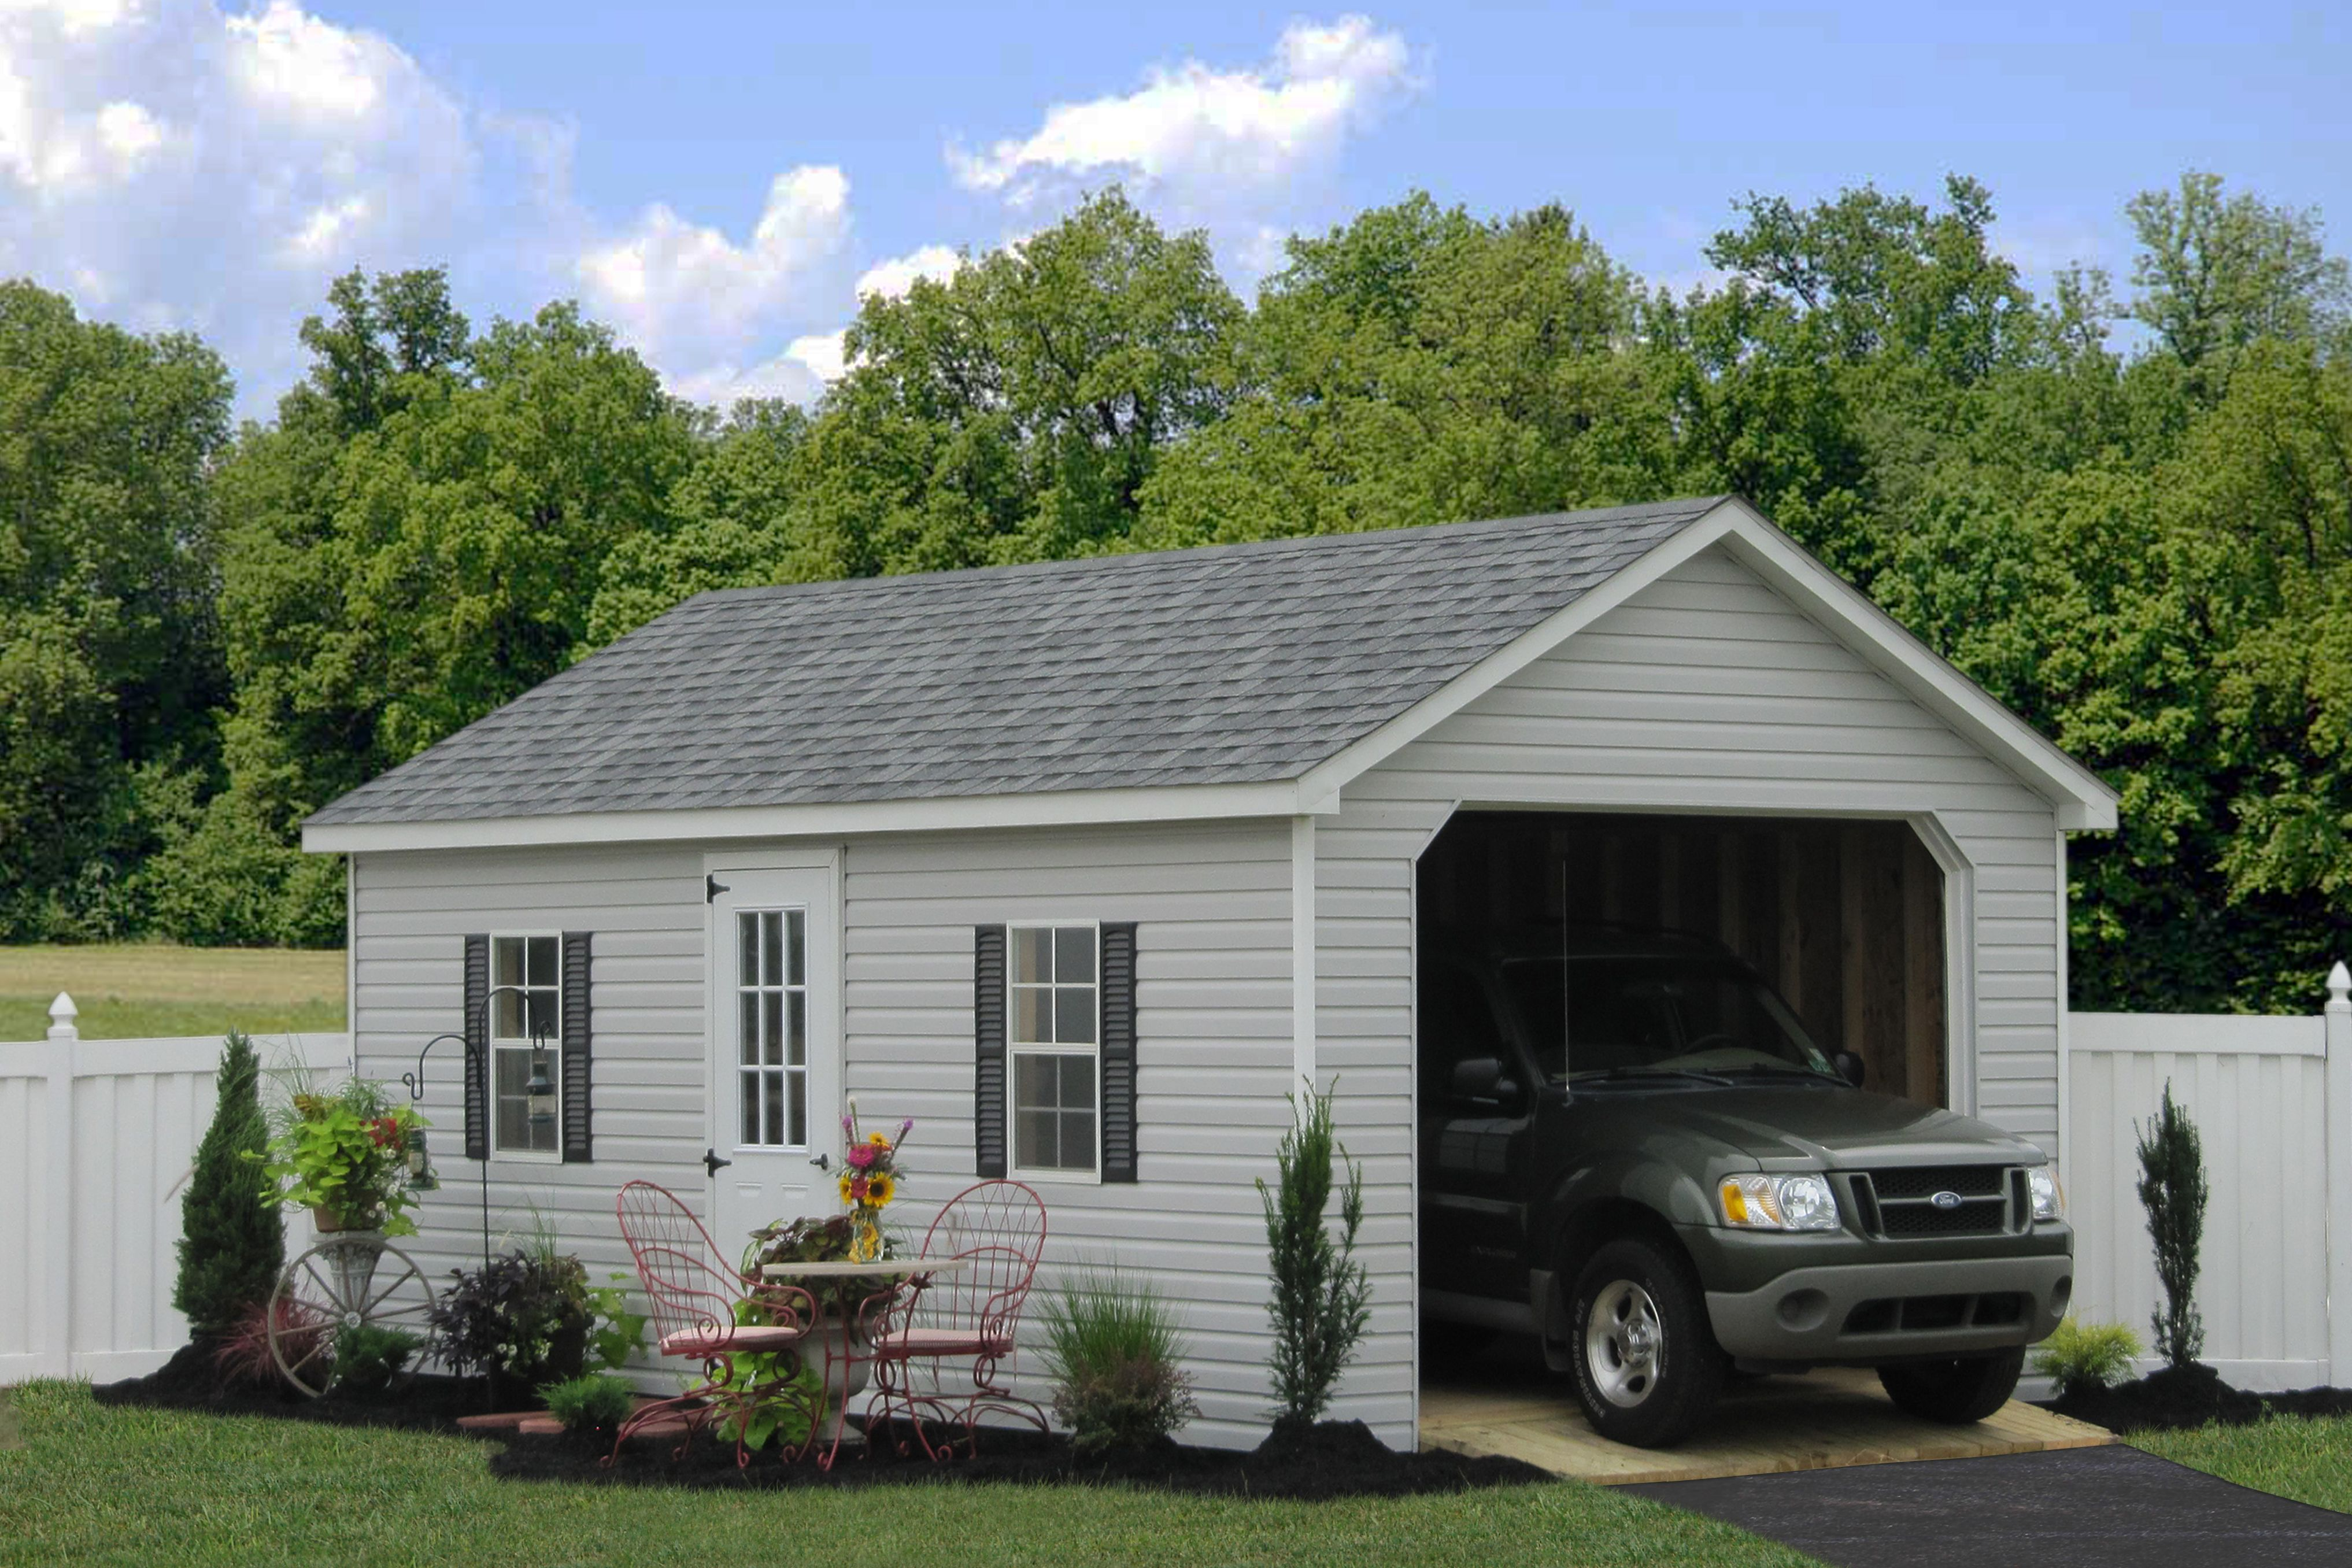 sheds unlimited is a supplier of custom built garden sheds in pa buy custom built sheds in pa for storage or a home workspace custom vinyl storage sheds